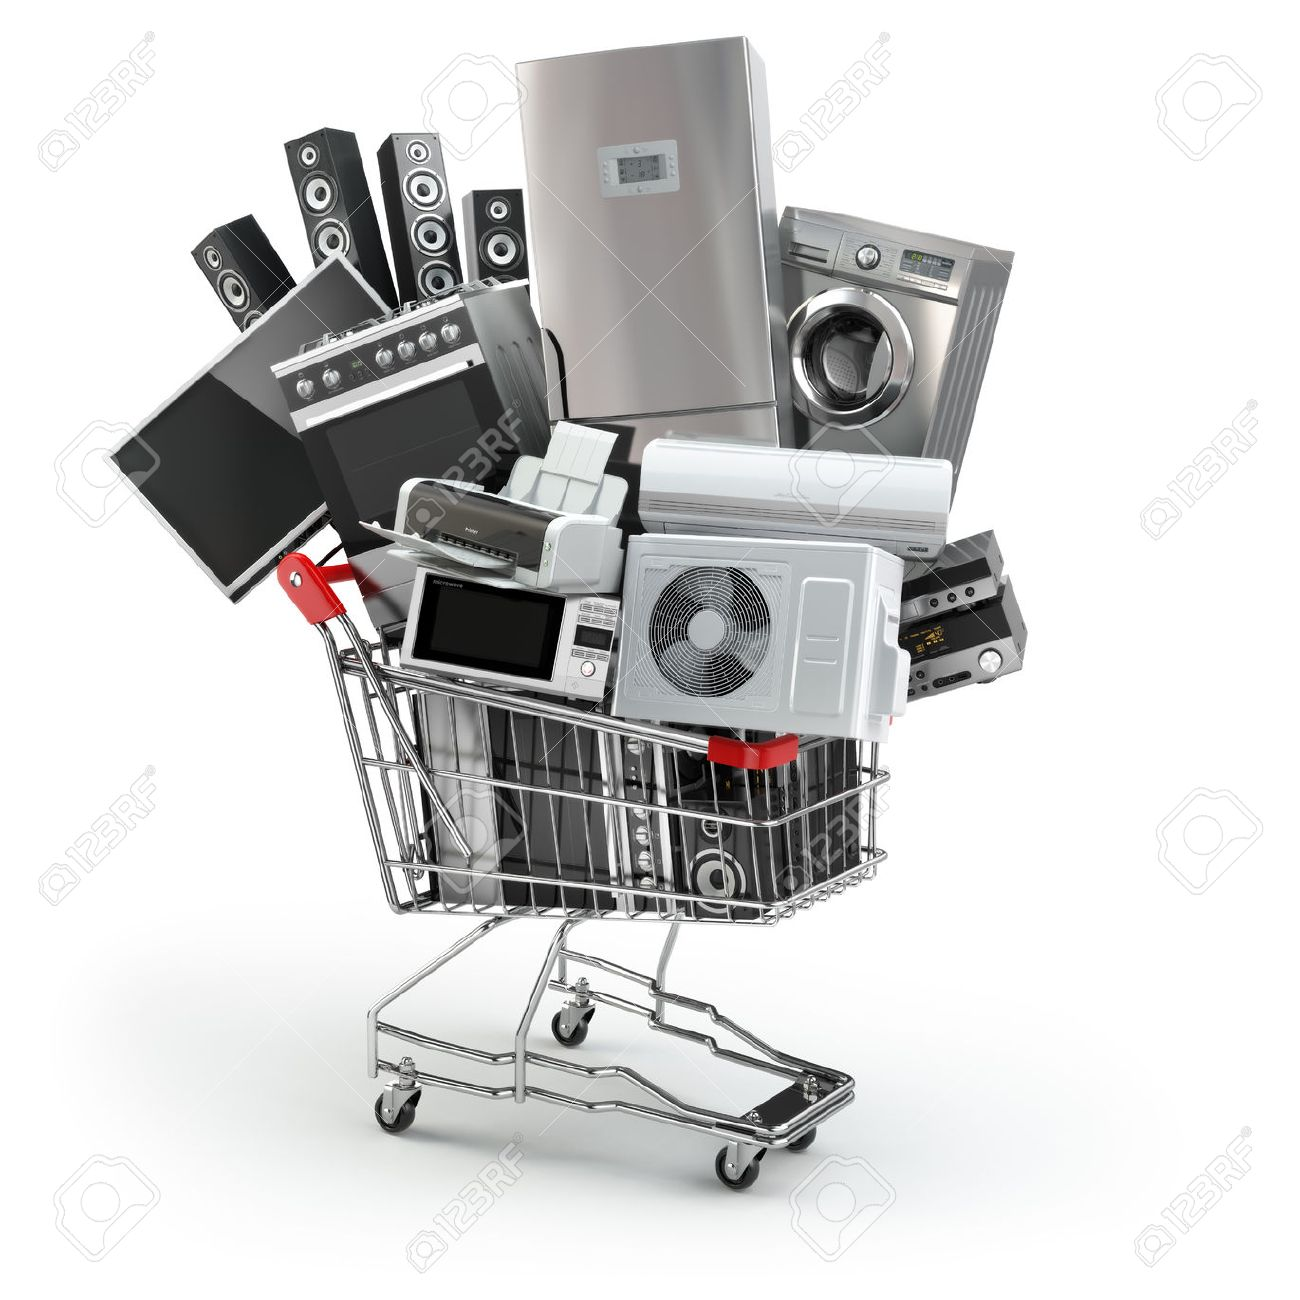 Uncategorized Home And Kitchen Appliances Online Shopping kitchen appliances set images stock pictures royalty free home in the shopping cart e commerce or online